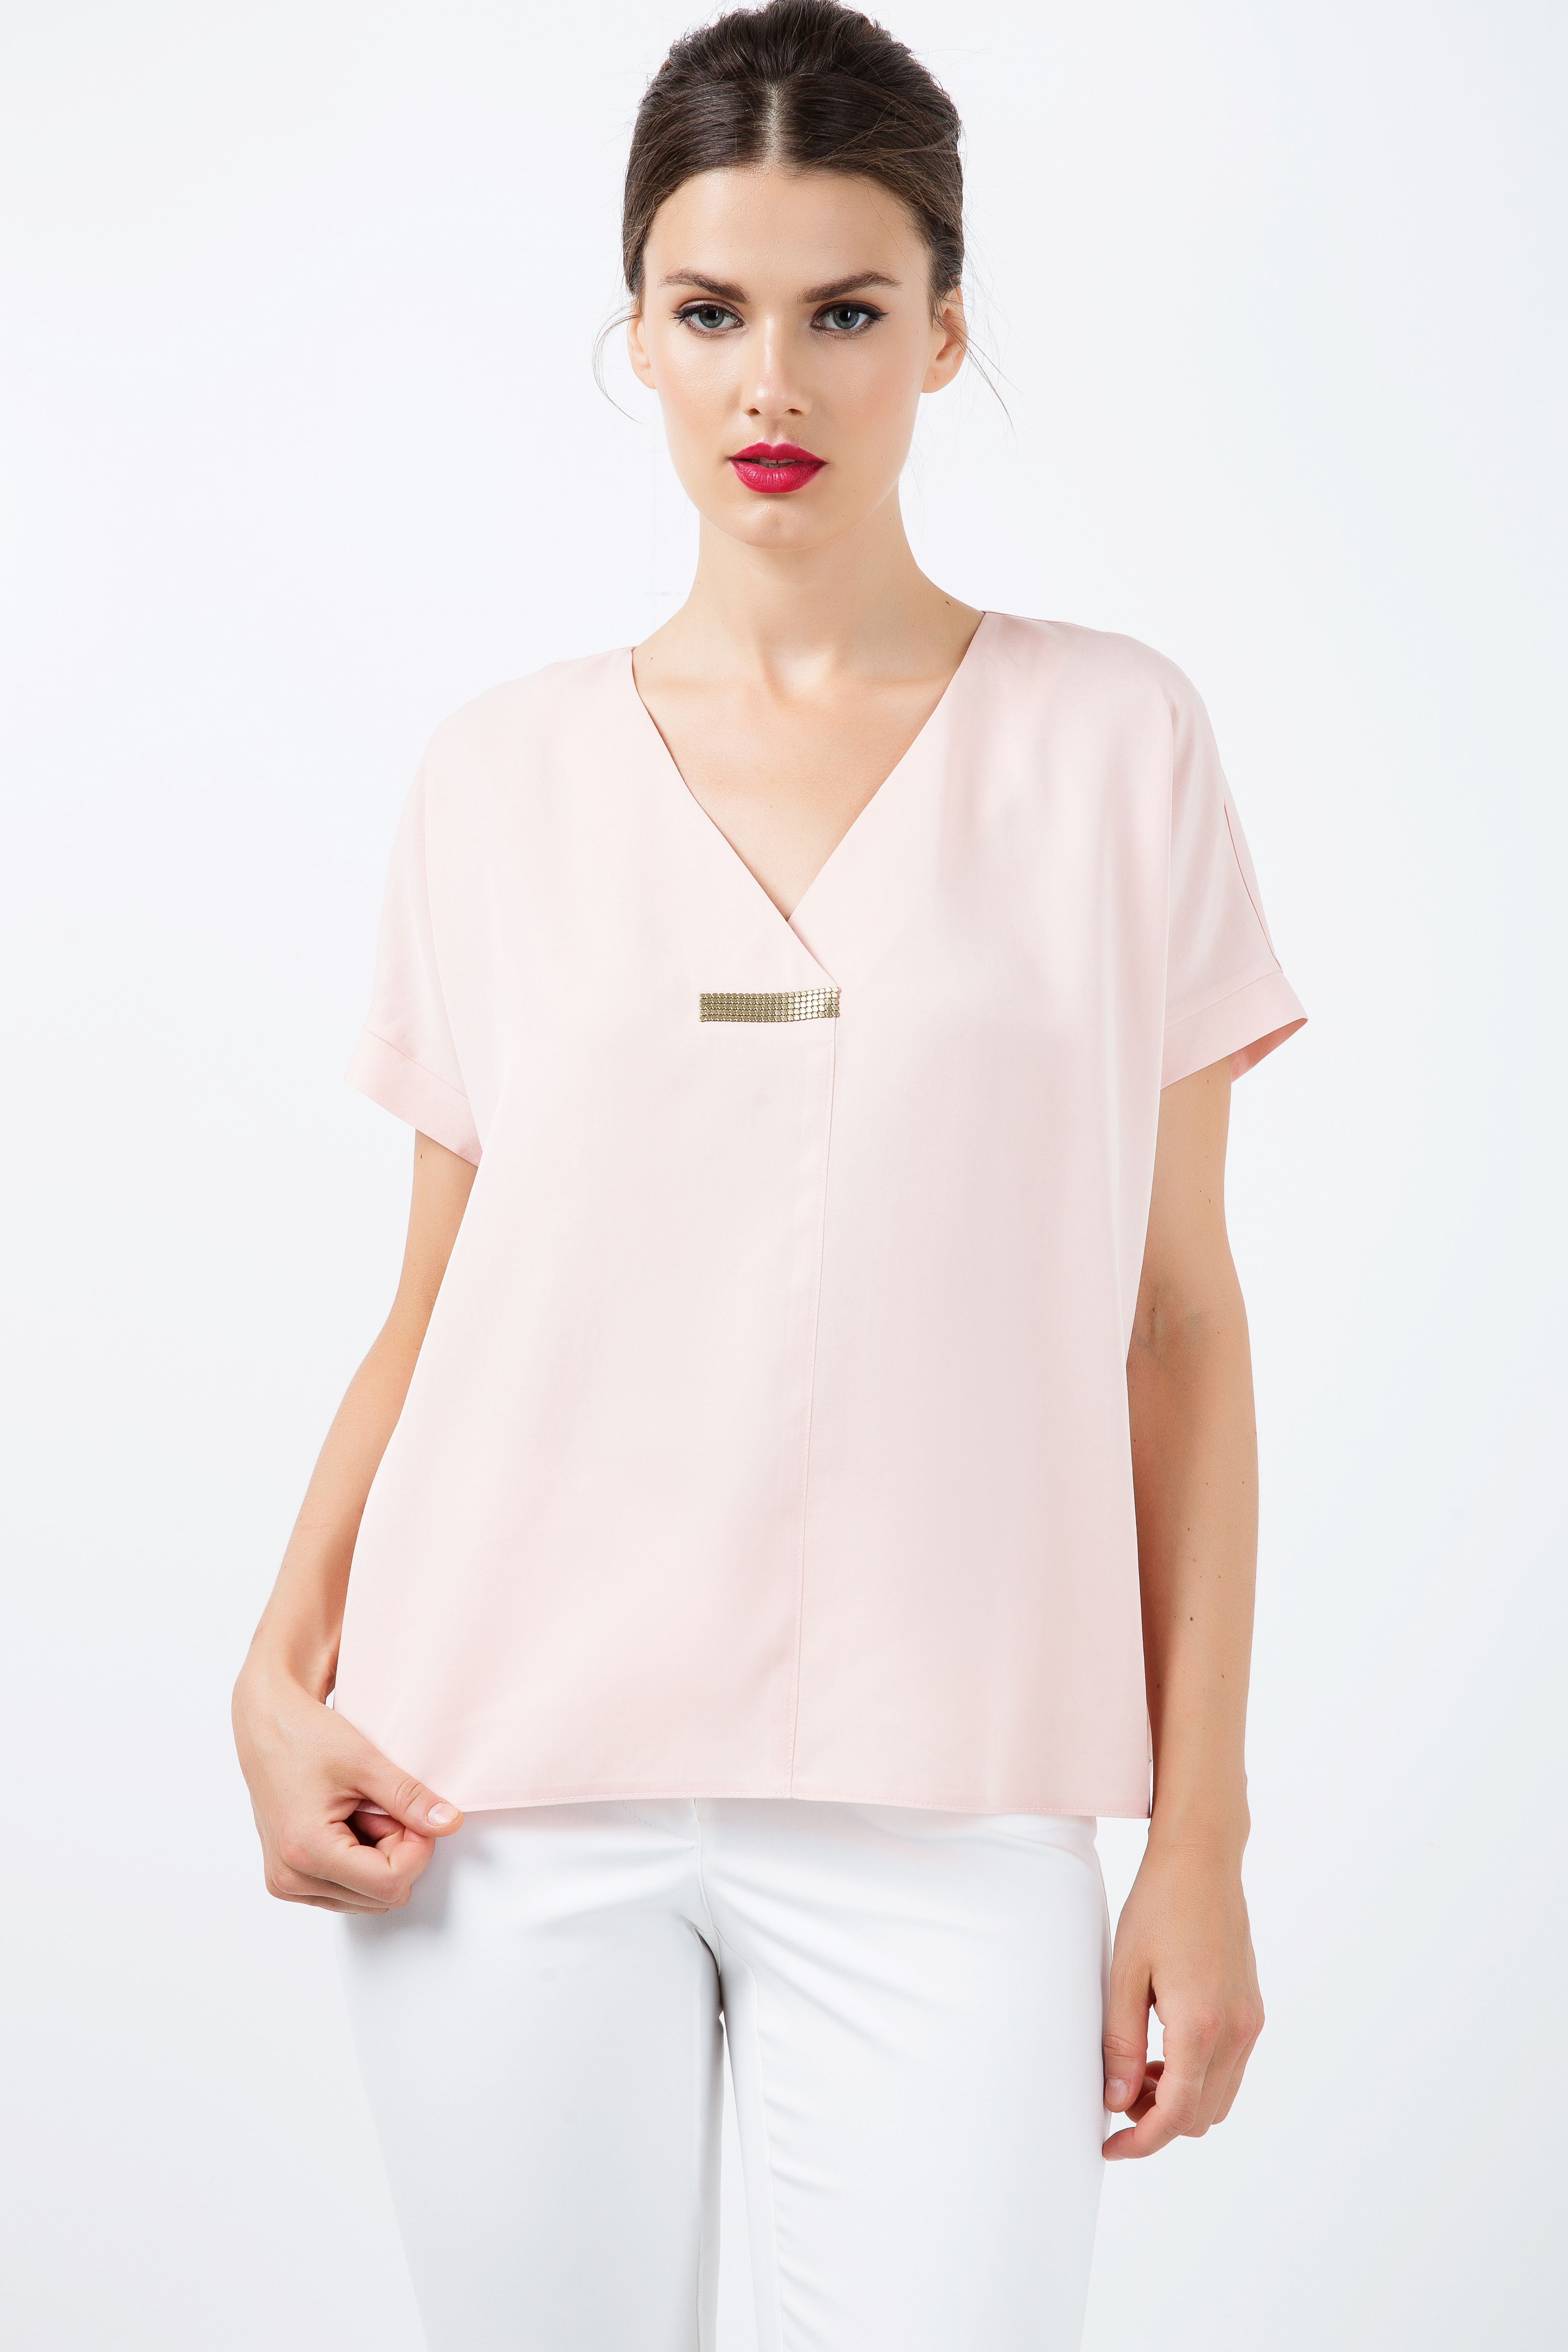 Short Sleeve top with V Neck Detail